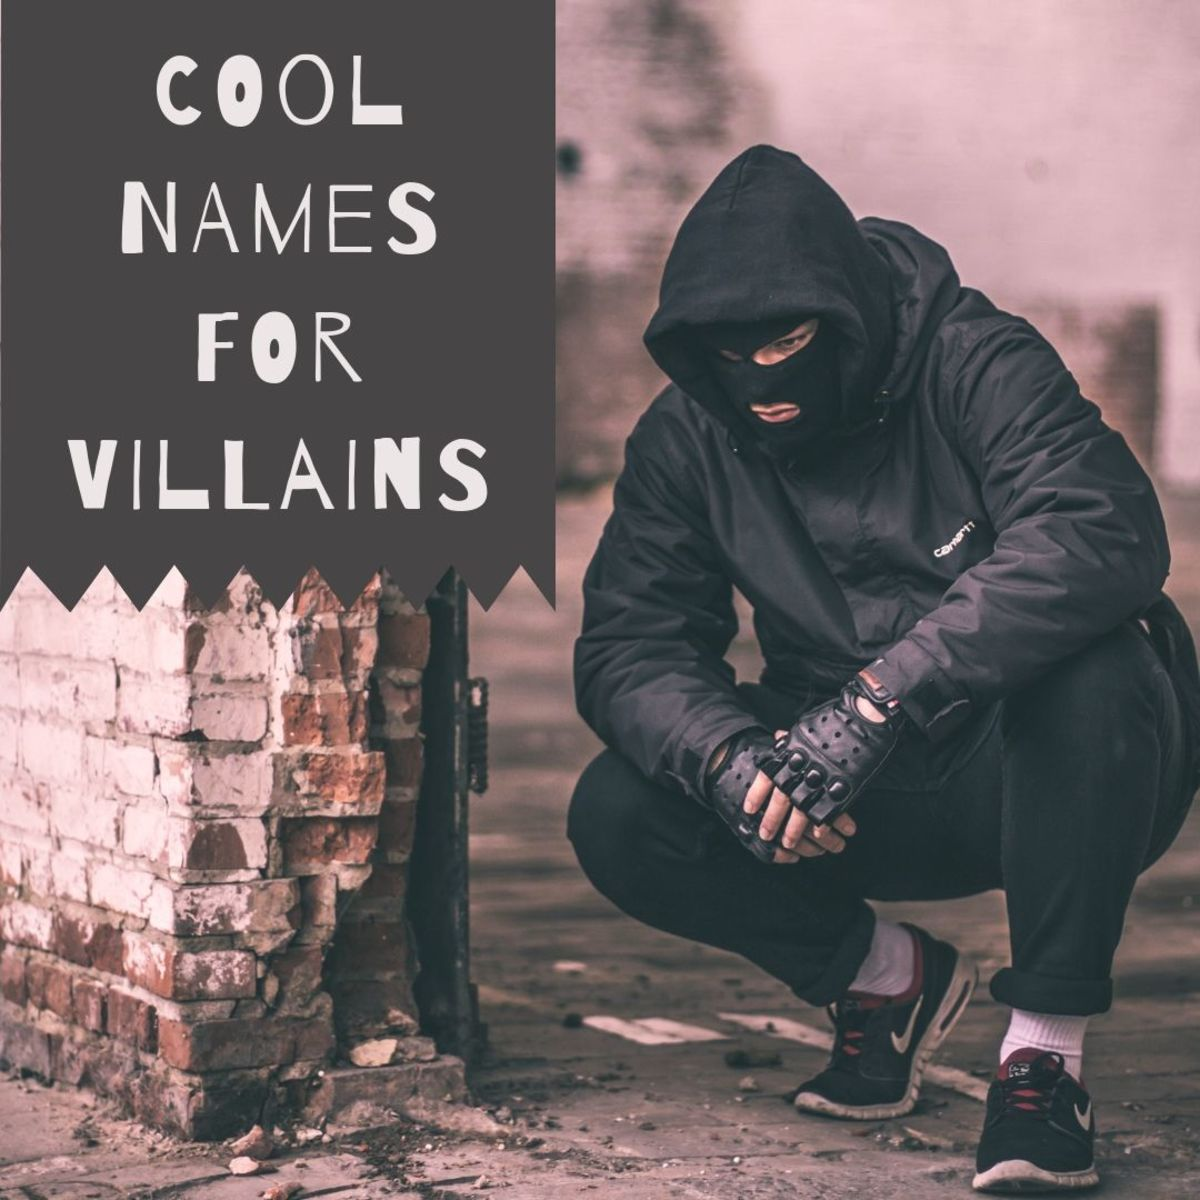 Cool Villain Names - Being Bad Is so Much More Fun Than Being Good